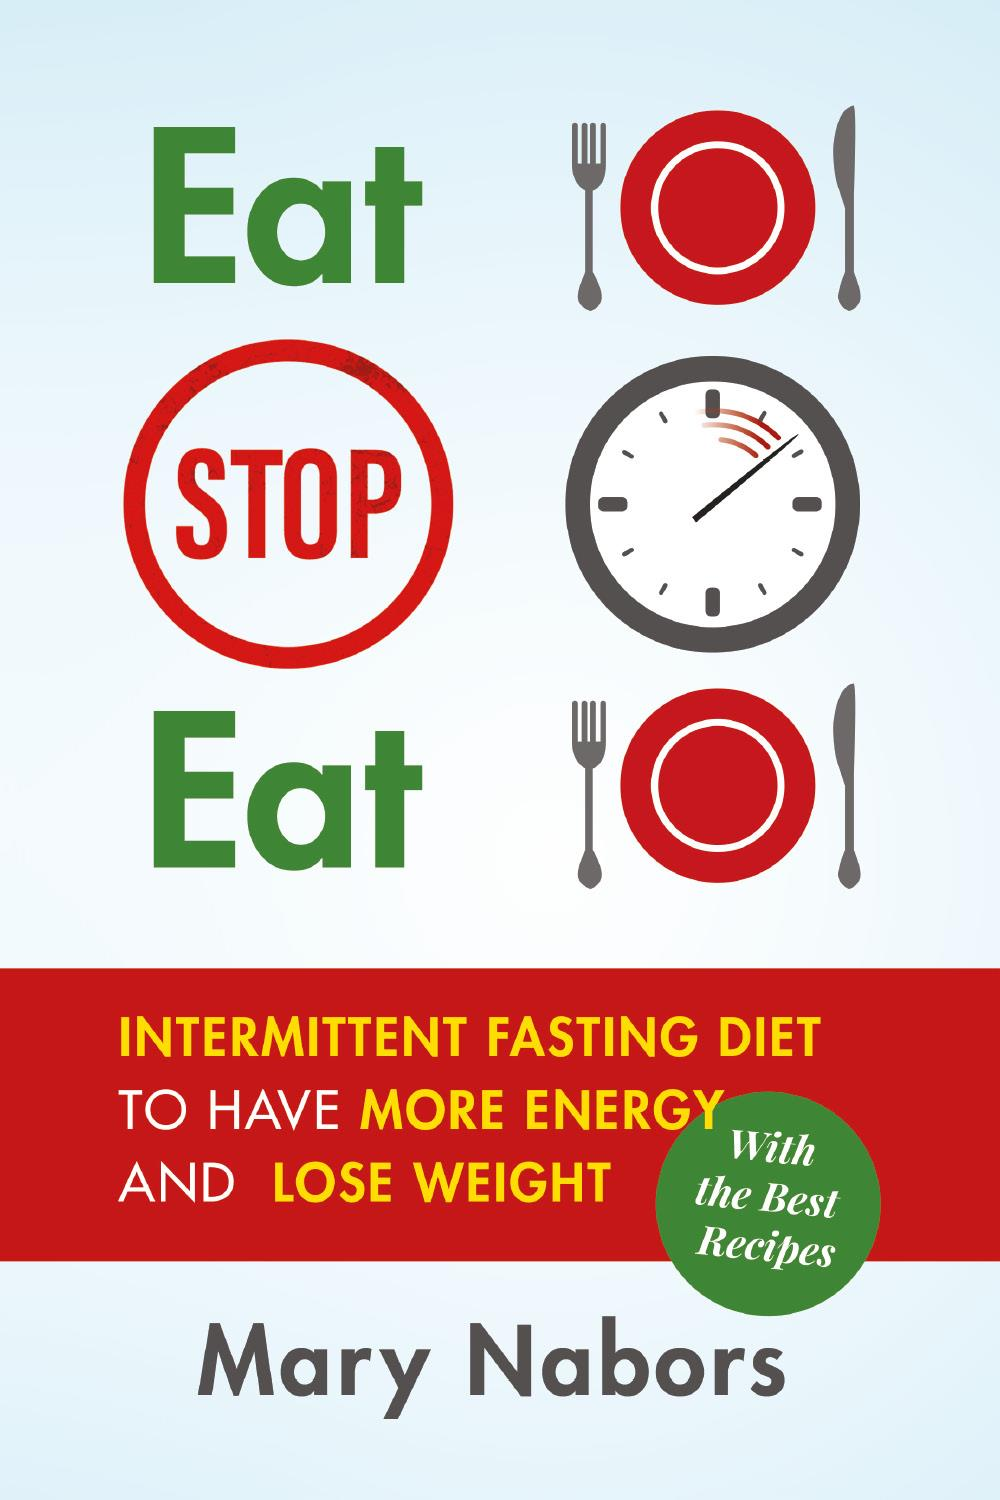 Eat Stop Eat. Intermittent Fasting Diet to Have More Energy and Lose Weight (with the Best Recipes)